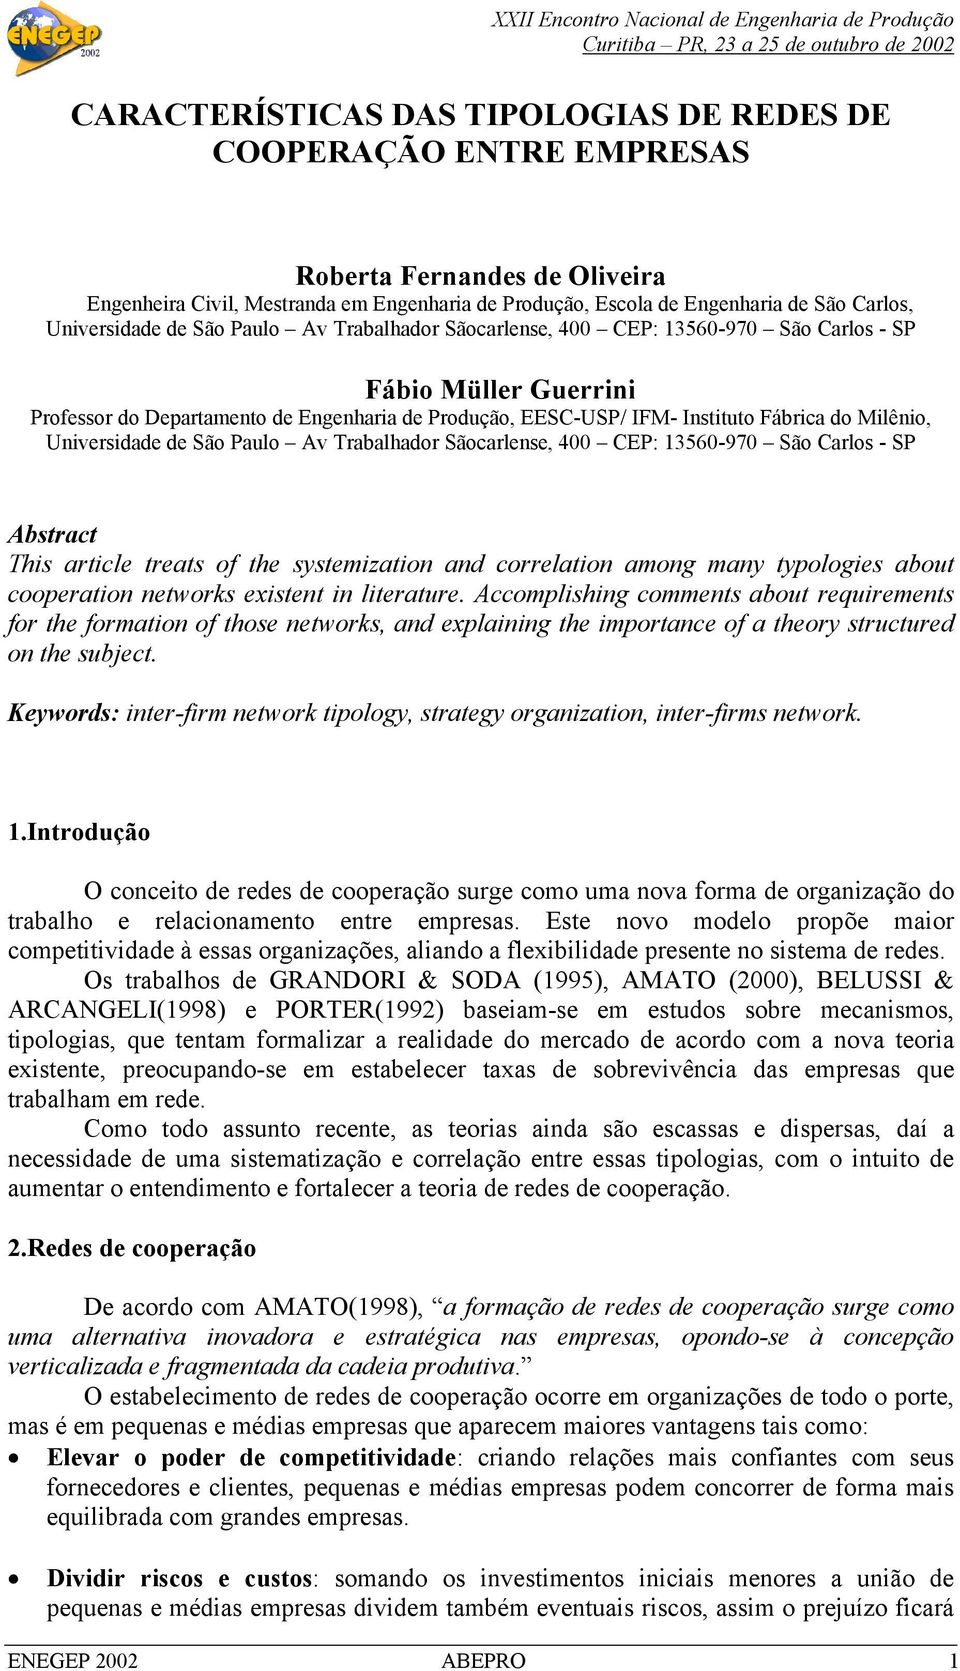 Milênio, Universidade de São Paulo Av Trabalhador Sãocarlense, 400 CEP: 13560-970 São Carlos - SP Abstract This article treats of the systemization and correlation among many typologies about